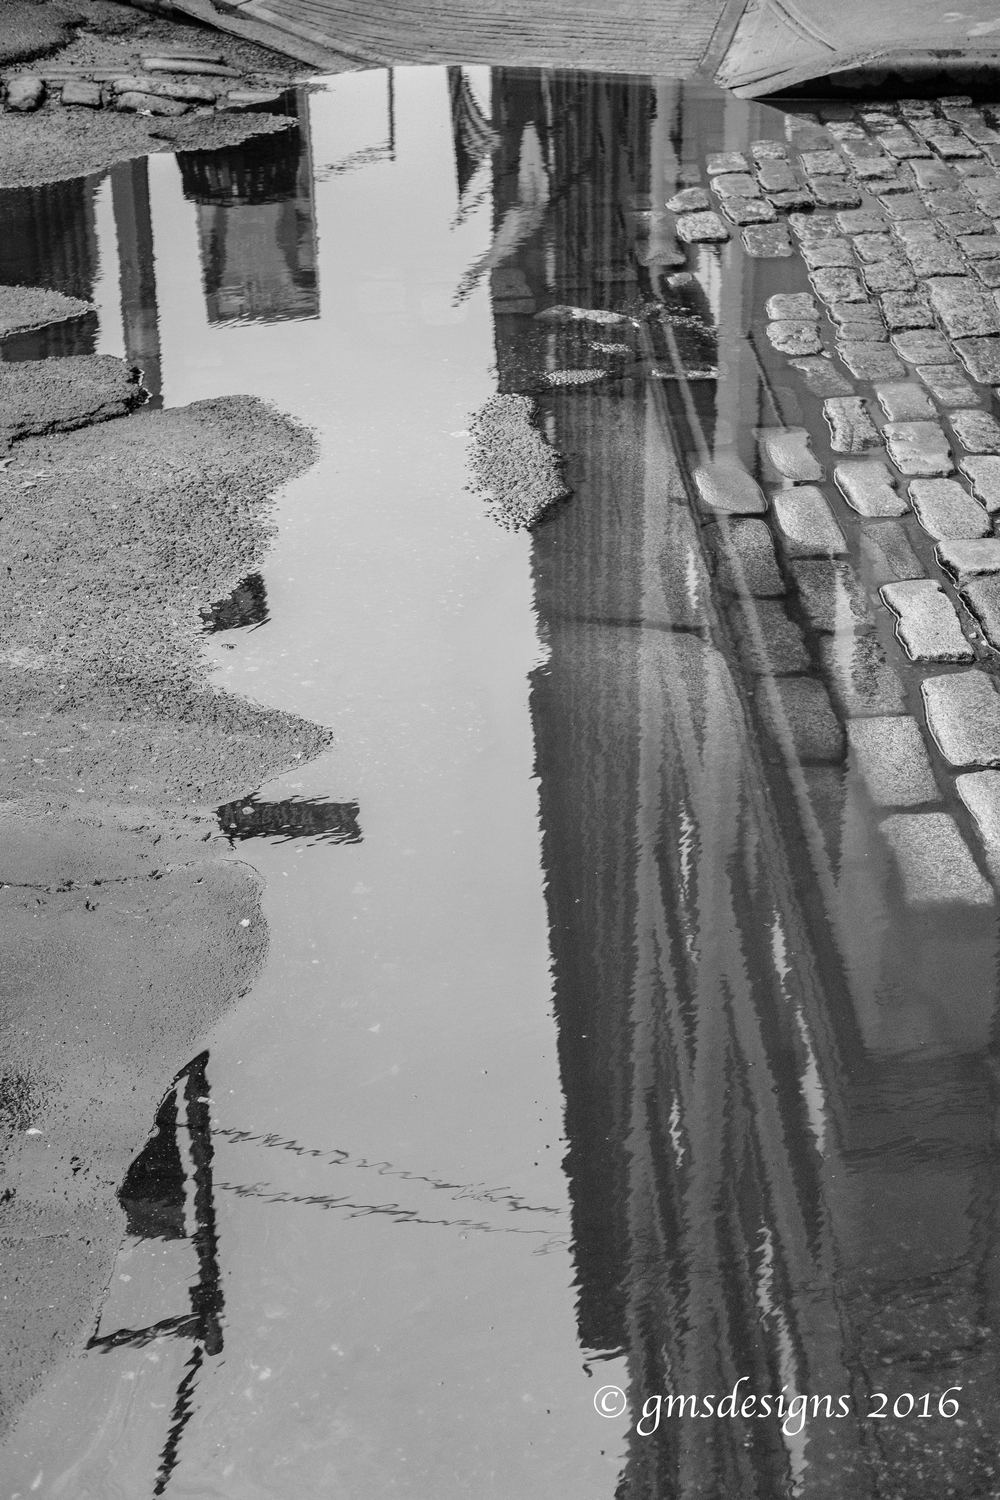 Puddle reflections, Dumbo, Brooklyn, NYC.jpg